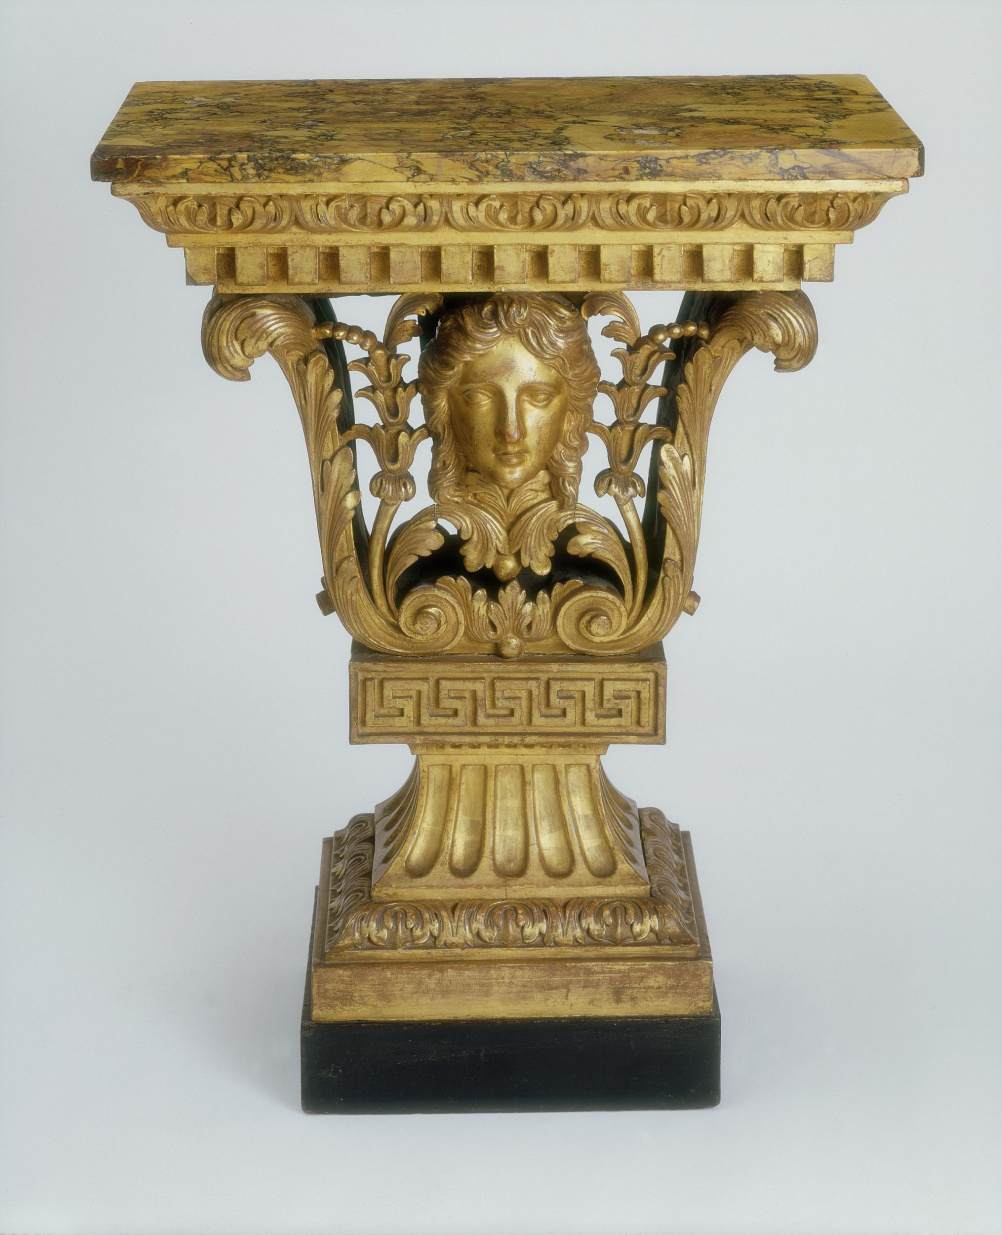 Console table for Chiswick House c.1727-32